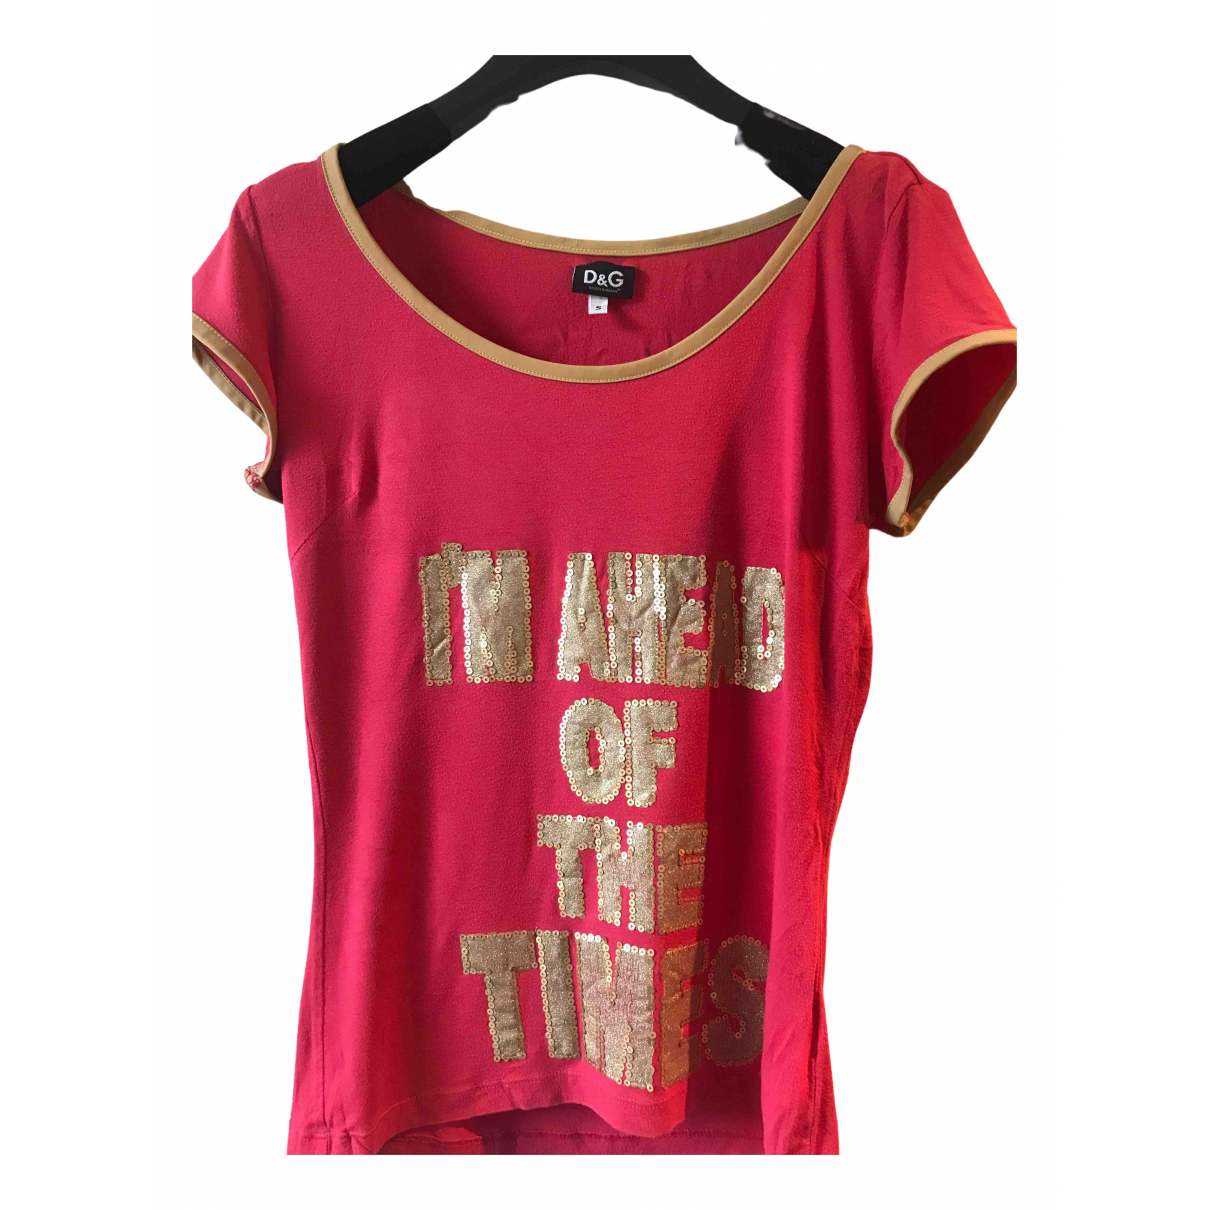 D&g \N Red Cotton  top for Women S International